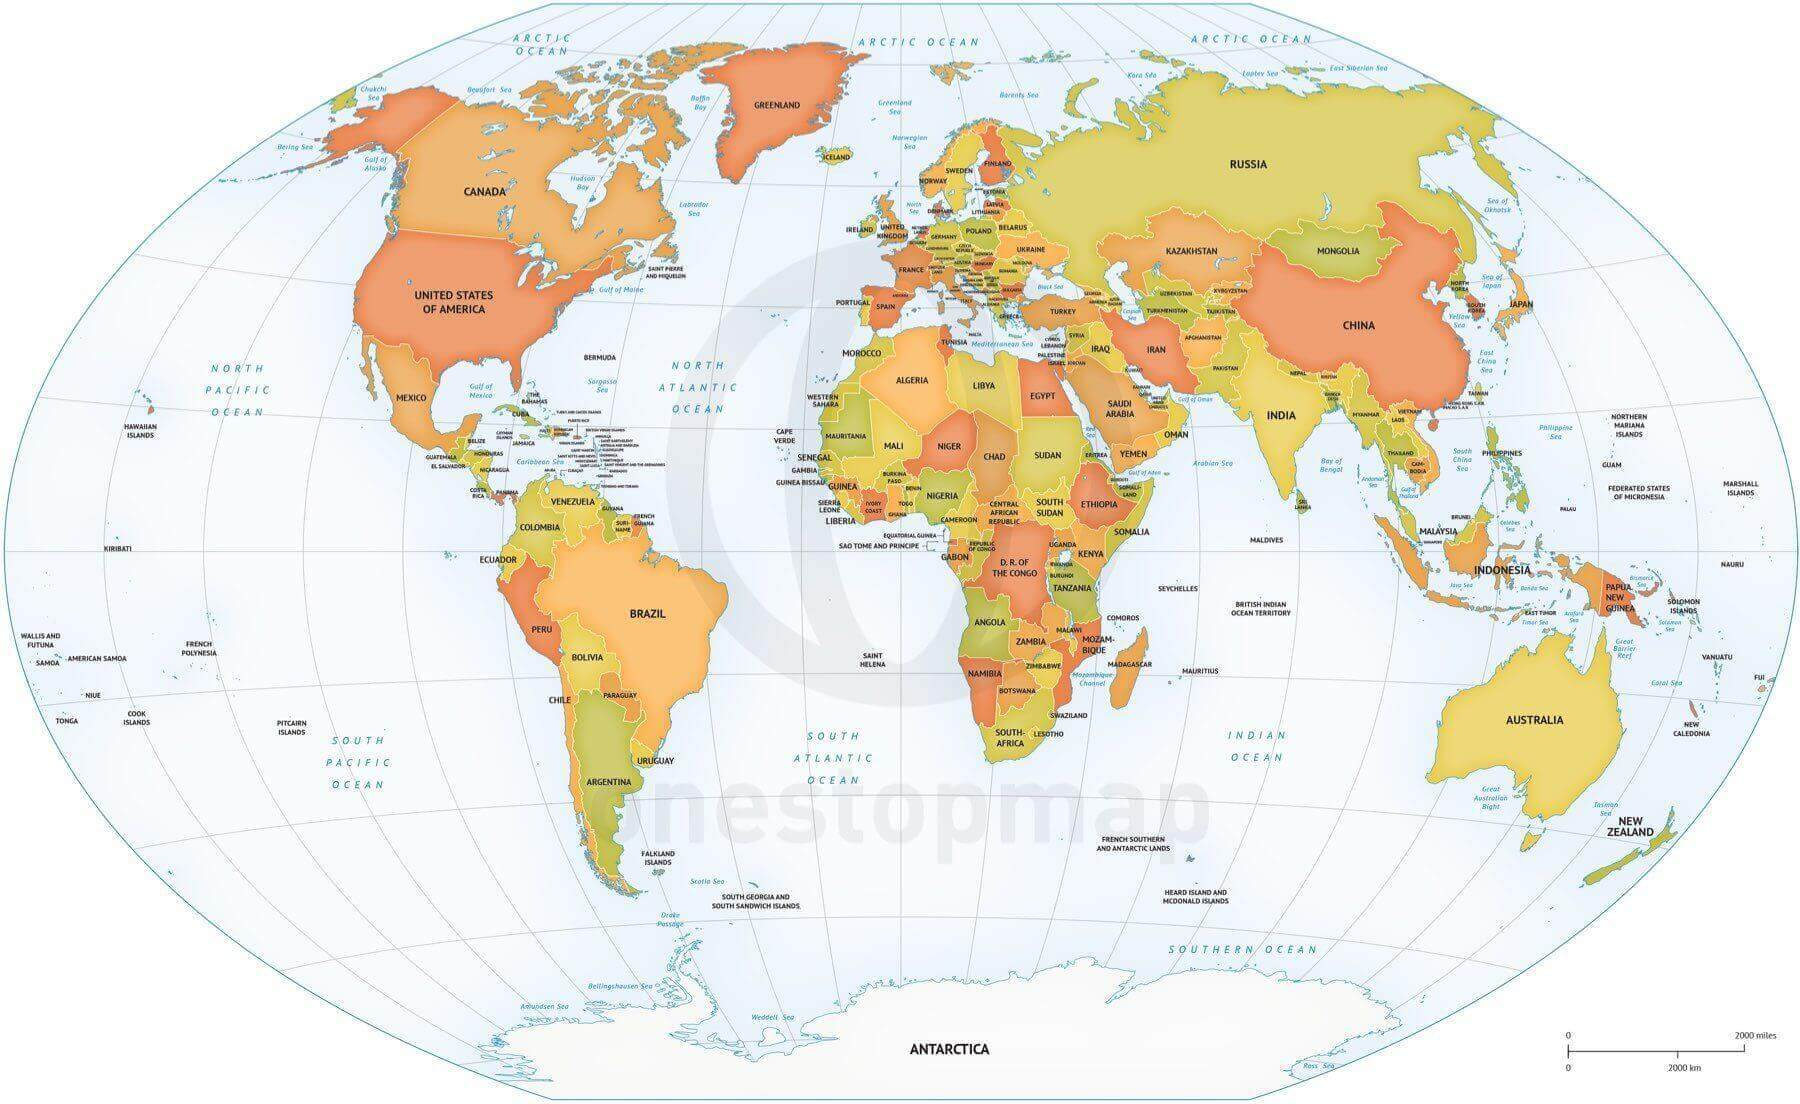 photo about Printable Map of World called Map of Environment political Winkel Tripel Europe-Africa based